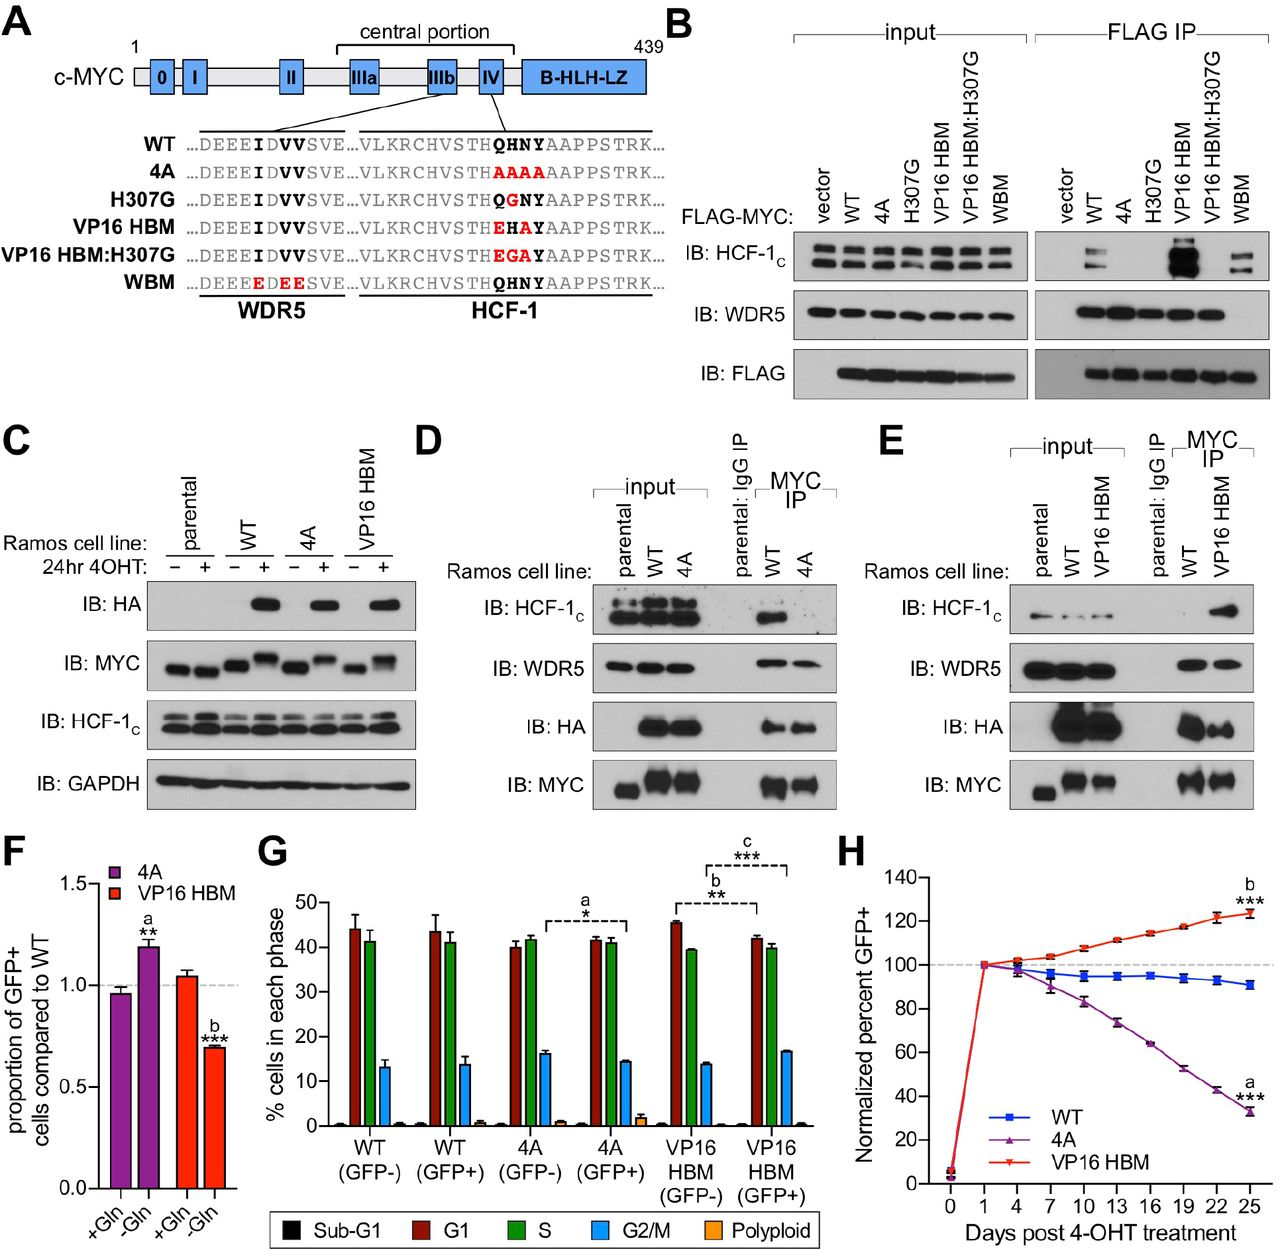 Validation of switchable Ramos cell lines to study the MYC–HCF-1 interaction. ( A ) In vitro transcribed/translated T7-tagged HCF-1 VIC was incubated with recombinant FLAG-tagged c-MYC, either WT or mutant (4A or VP16 HBM), and immunoprecipitation (IP) performed using anti-FLAG M2 agarose. Western blot of the input lysate, and the IP eluate, was performed using antibodies against the T7 and FLAG tags. ( B ) The translocated MYC locus from Ramos cells is depicted at top, with chromosome 14 (red) and 8 (blue) elements indicated. Beneath is a representation of the locus modification, in either the unswitched (middle) or switched (bottom) states. This switchable allele contains a wild-type (WT) exon 3, a P2A-linked puromycin cassette, and a SV40 polyadenylation (SV40 PA) signal, all of which are flanked by LoxP sites (black triangles). Downstream of the LoxP-flanked region is an HA-tagged mutant exon 3 (mut-Ex3) and a P2A-linked GFP cassette. Activation of CRE-ER T2 results in excision of WT exon 3 and its replacement with mutant exon 3 which carries sequences encoding either WT or mutant (4A or VP16 HBM) MYC protein. ( C ) Comparison of the structure of the parental (non-modified) MYC allele (top) compared to the switchable MYC allele (bottom). XbaI sites used for digestion of genomic DNA in Southern blot are highlighted, as are the complementary sites for the MYC and GFP probes. The expected products of XbaI digestion for the parental line are 6,784 bp for the MYC probe (which detects both the translocated and non-translocated alleles) and nothing for the GFP probe; for correctly-engineered lines the expected sizes are 6,784 bp and 2,942 bp for the MYC probe, and 6,624 bp for the GFP probe. ( D ) Southern blot using GFP and MYC probes on XbaI-digested gDNA from unswitched parental or switchable cells (WT, 4A, and VP16 HBM), with digested positive and negative control plasmids. ( E ) Switchable cells were treated with or without 20 nM 4-OHT (24 hours), fixed using 1% f